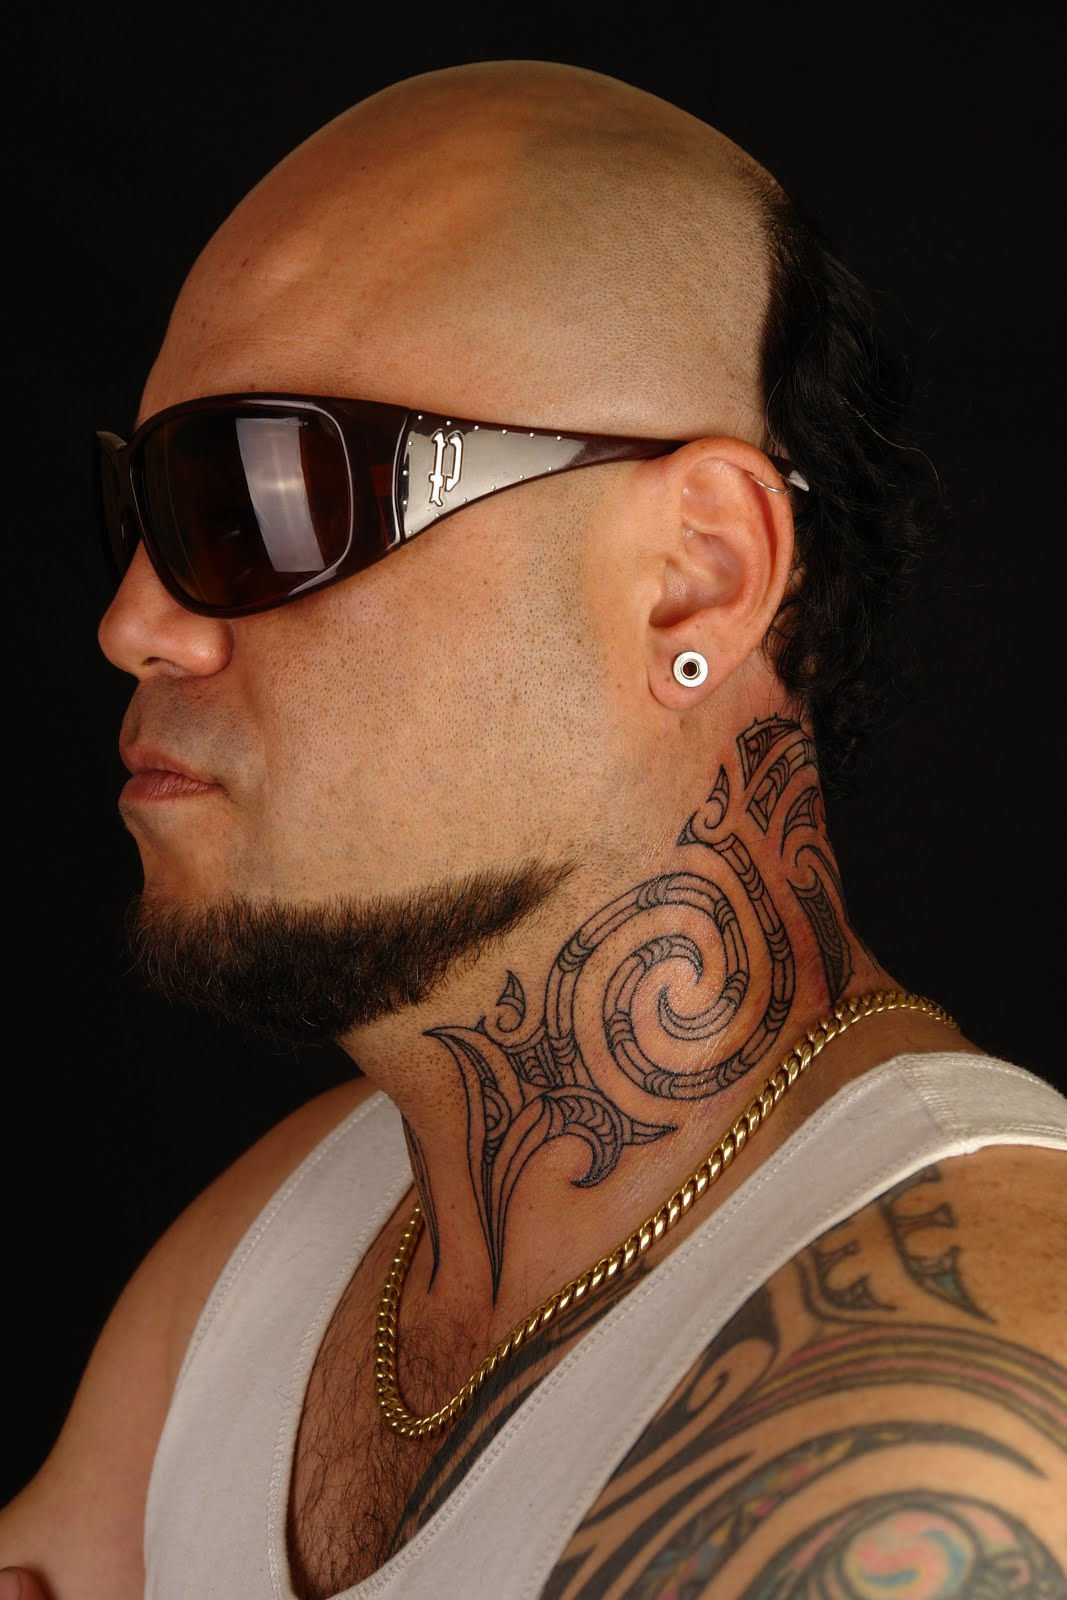 Maori Man: Maori Tattoos Designs, Ideas And Meaning